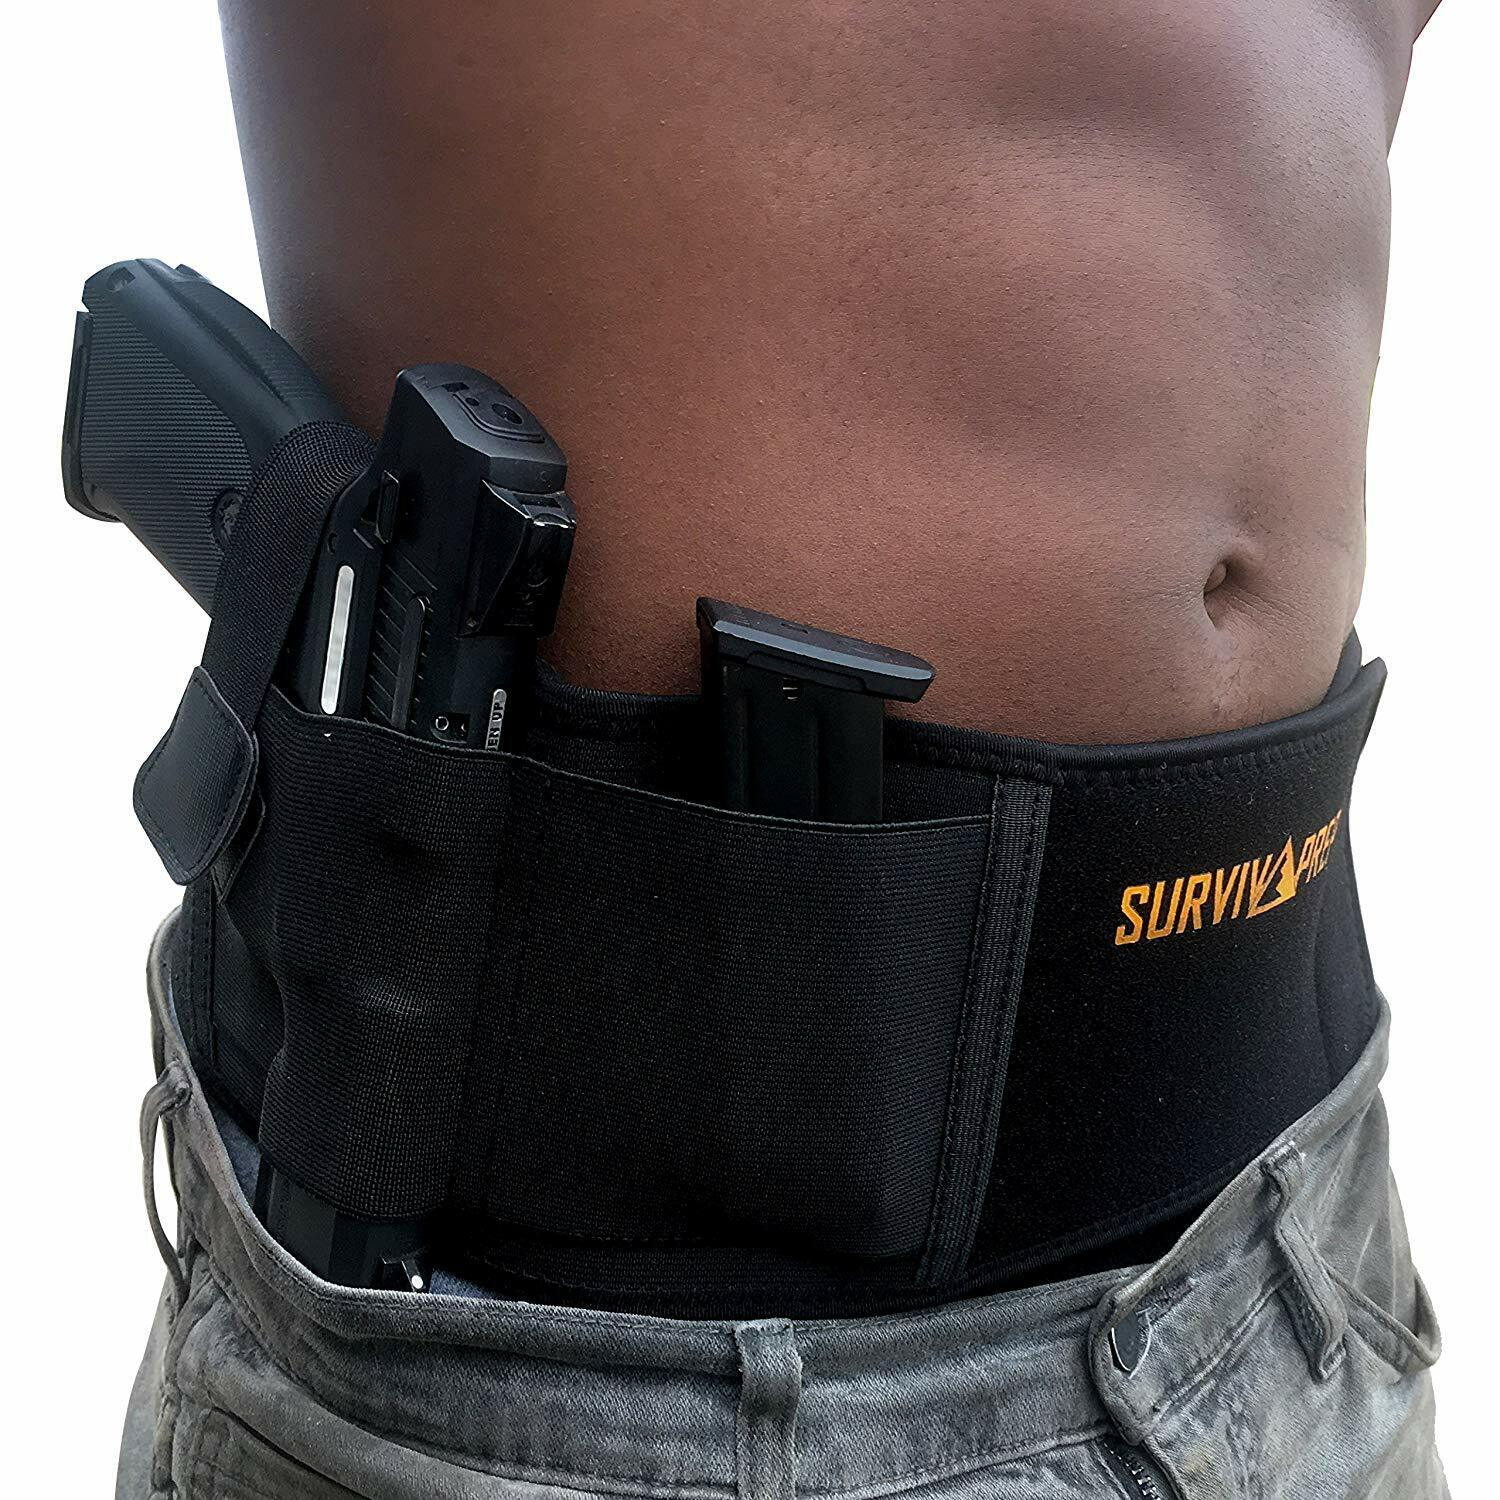 Belly Band Holster | Concealed Carry Holsters for Women Men Tactical Gun IWB OWB